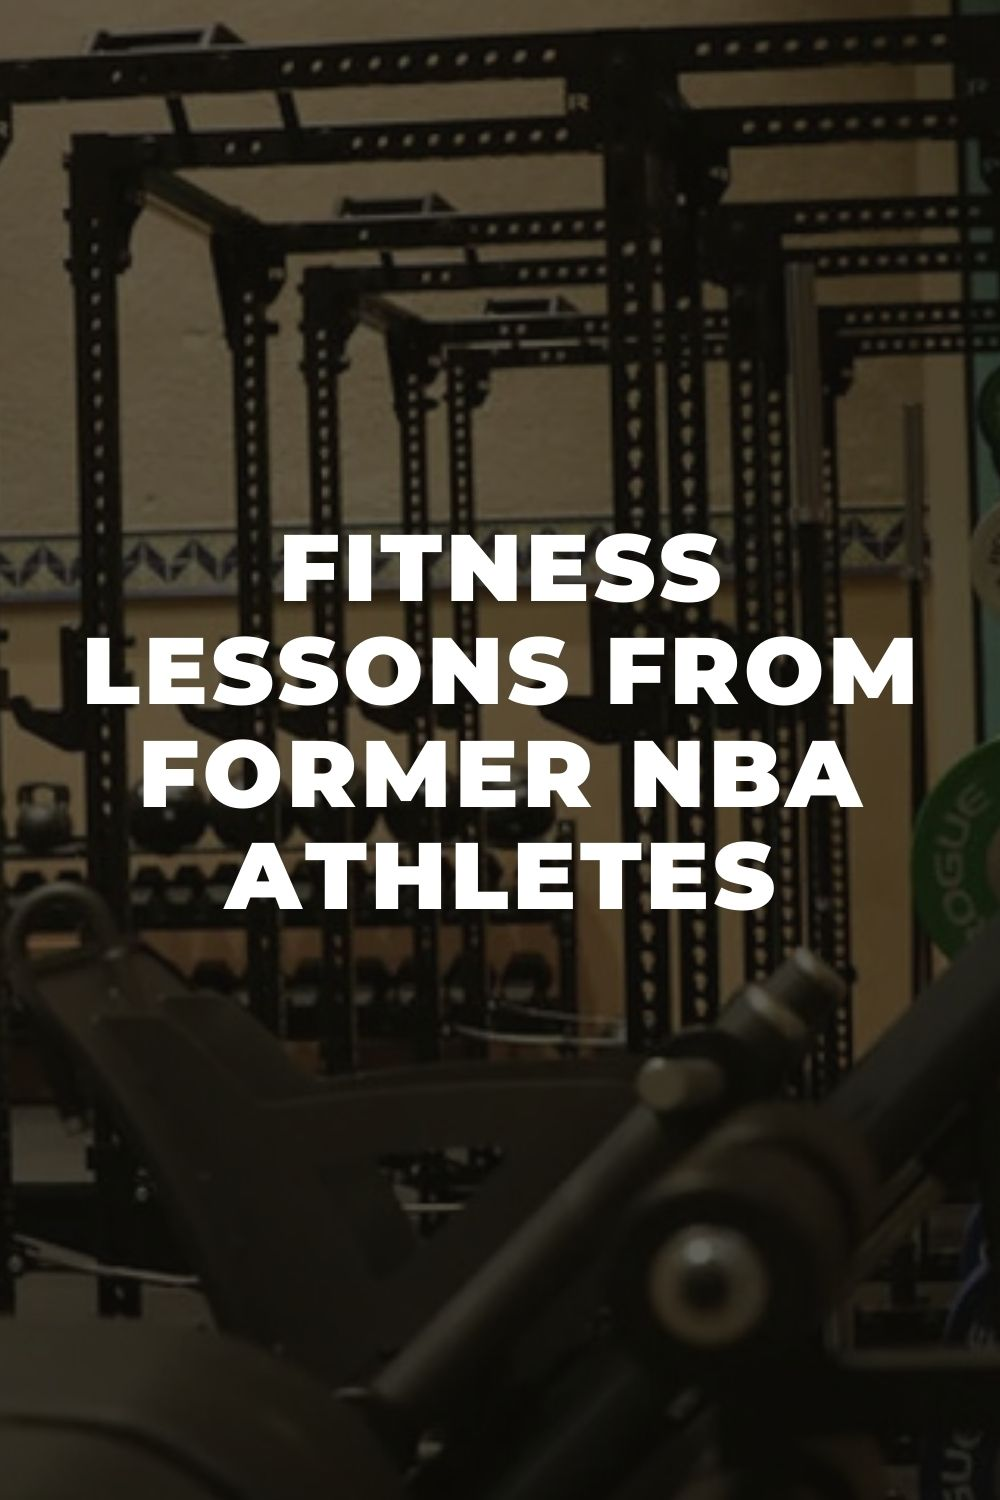 Fitness Lessons From Former NBA Athletes